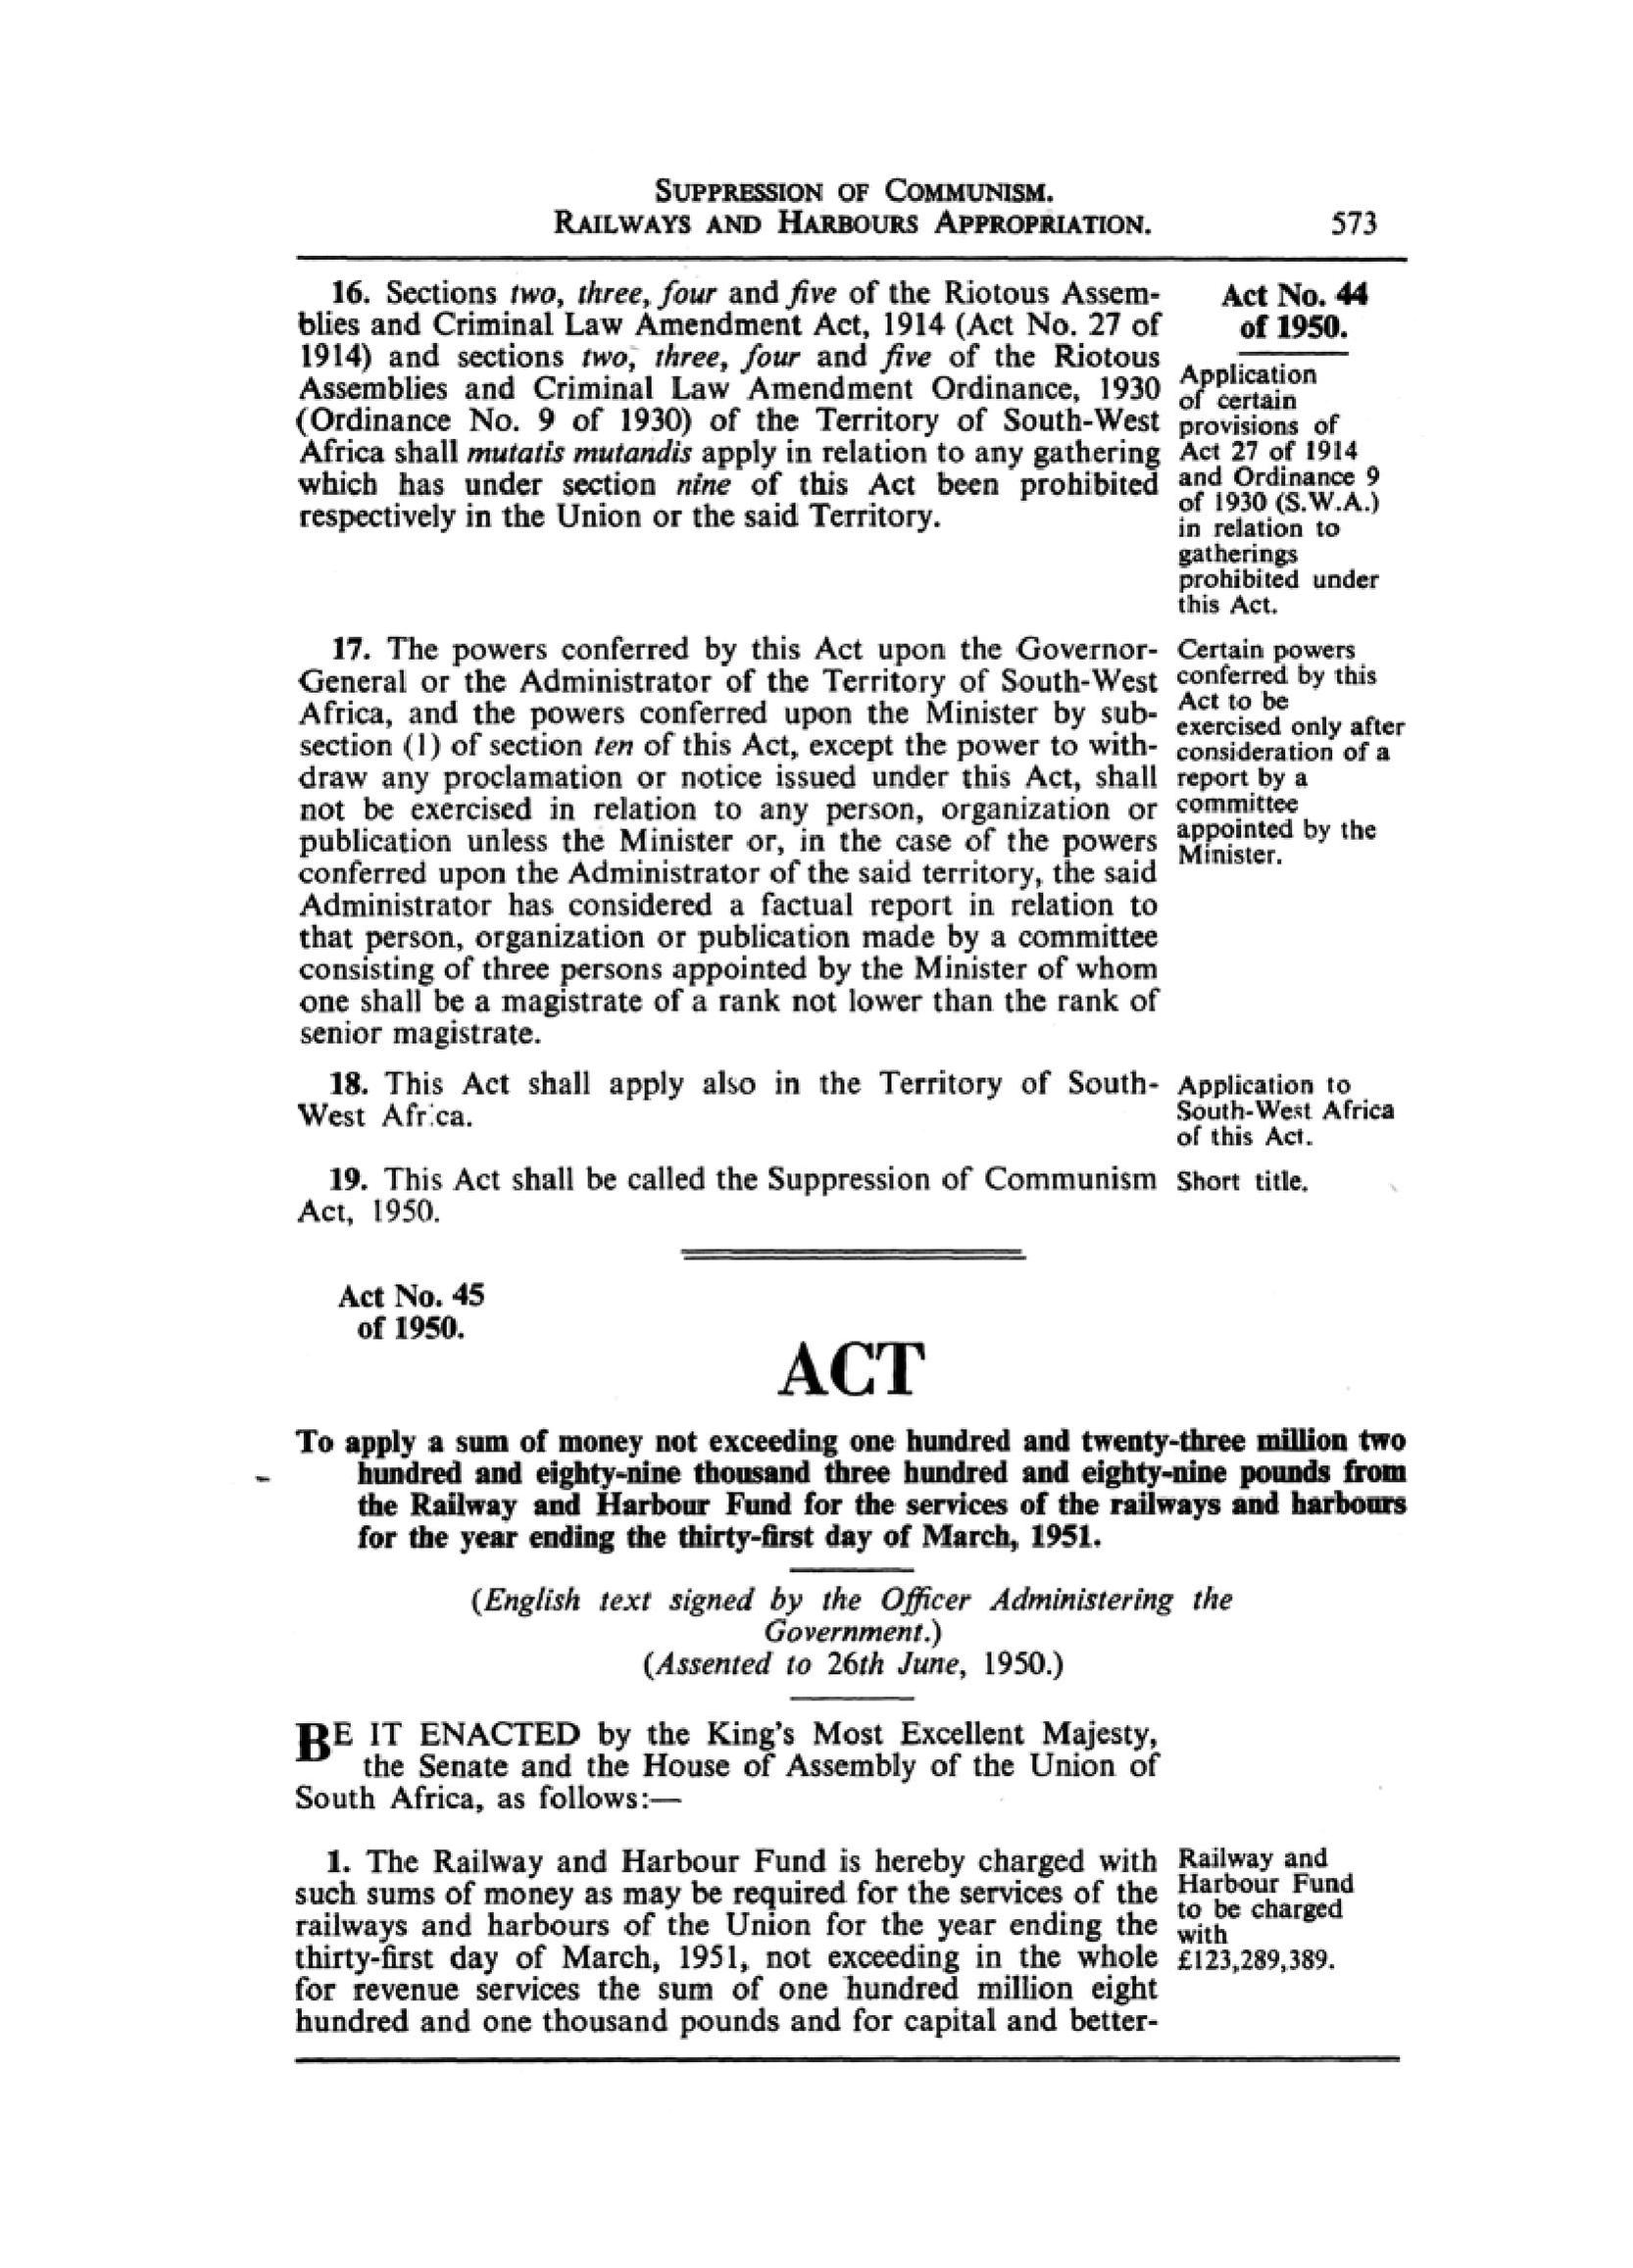 suppression of communism act no of approved in the statement condemning the first banning under the suppression of communism act